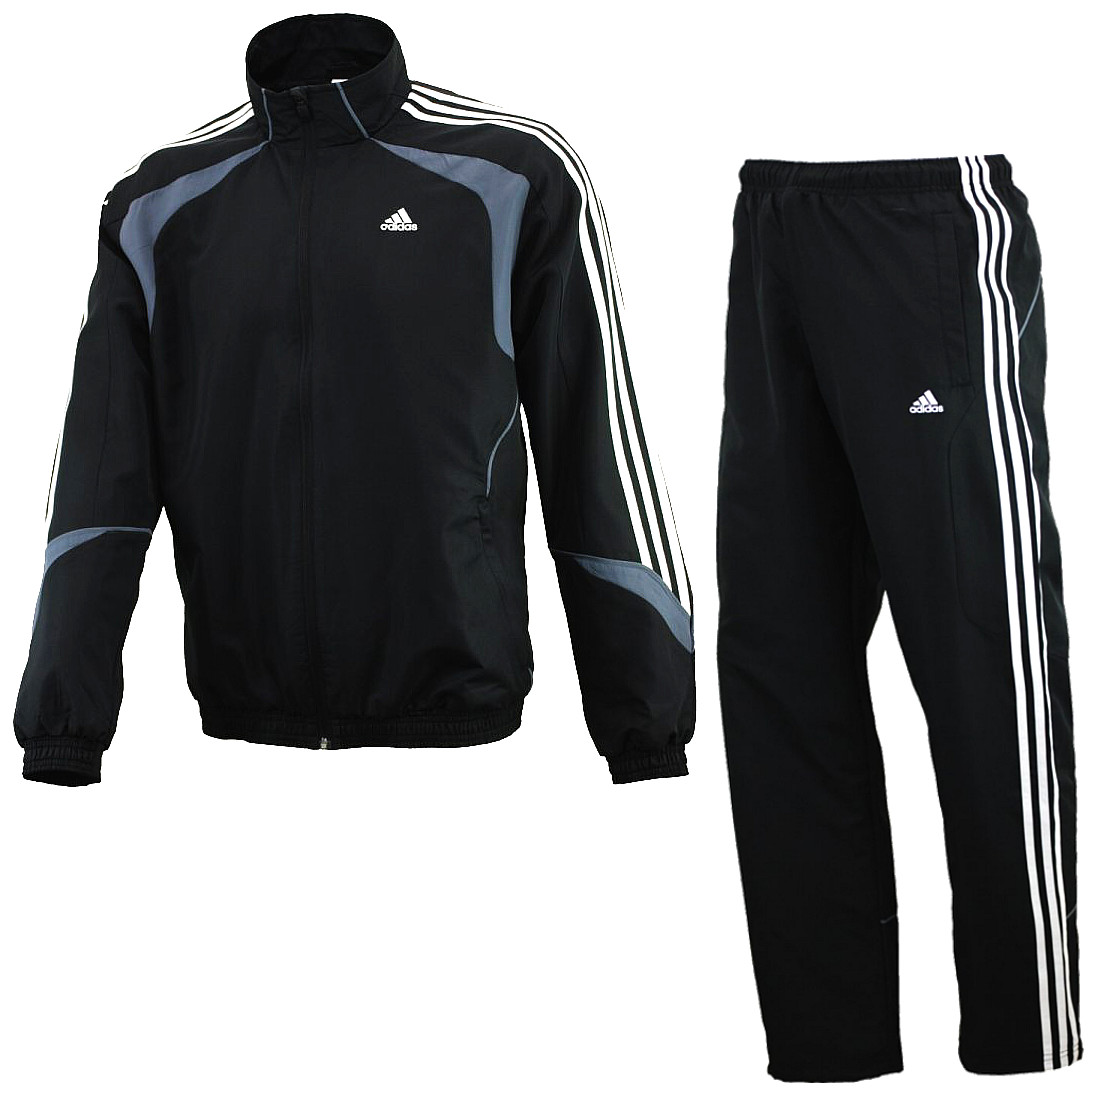 adidas ts basic 3 stripe herren trainingsanzug schwarz. Black Bedroom Furniture Sets. Home Design Ideas